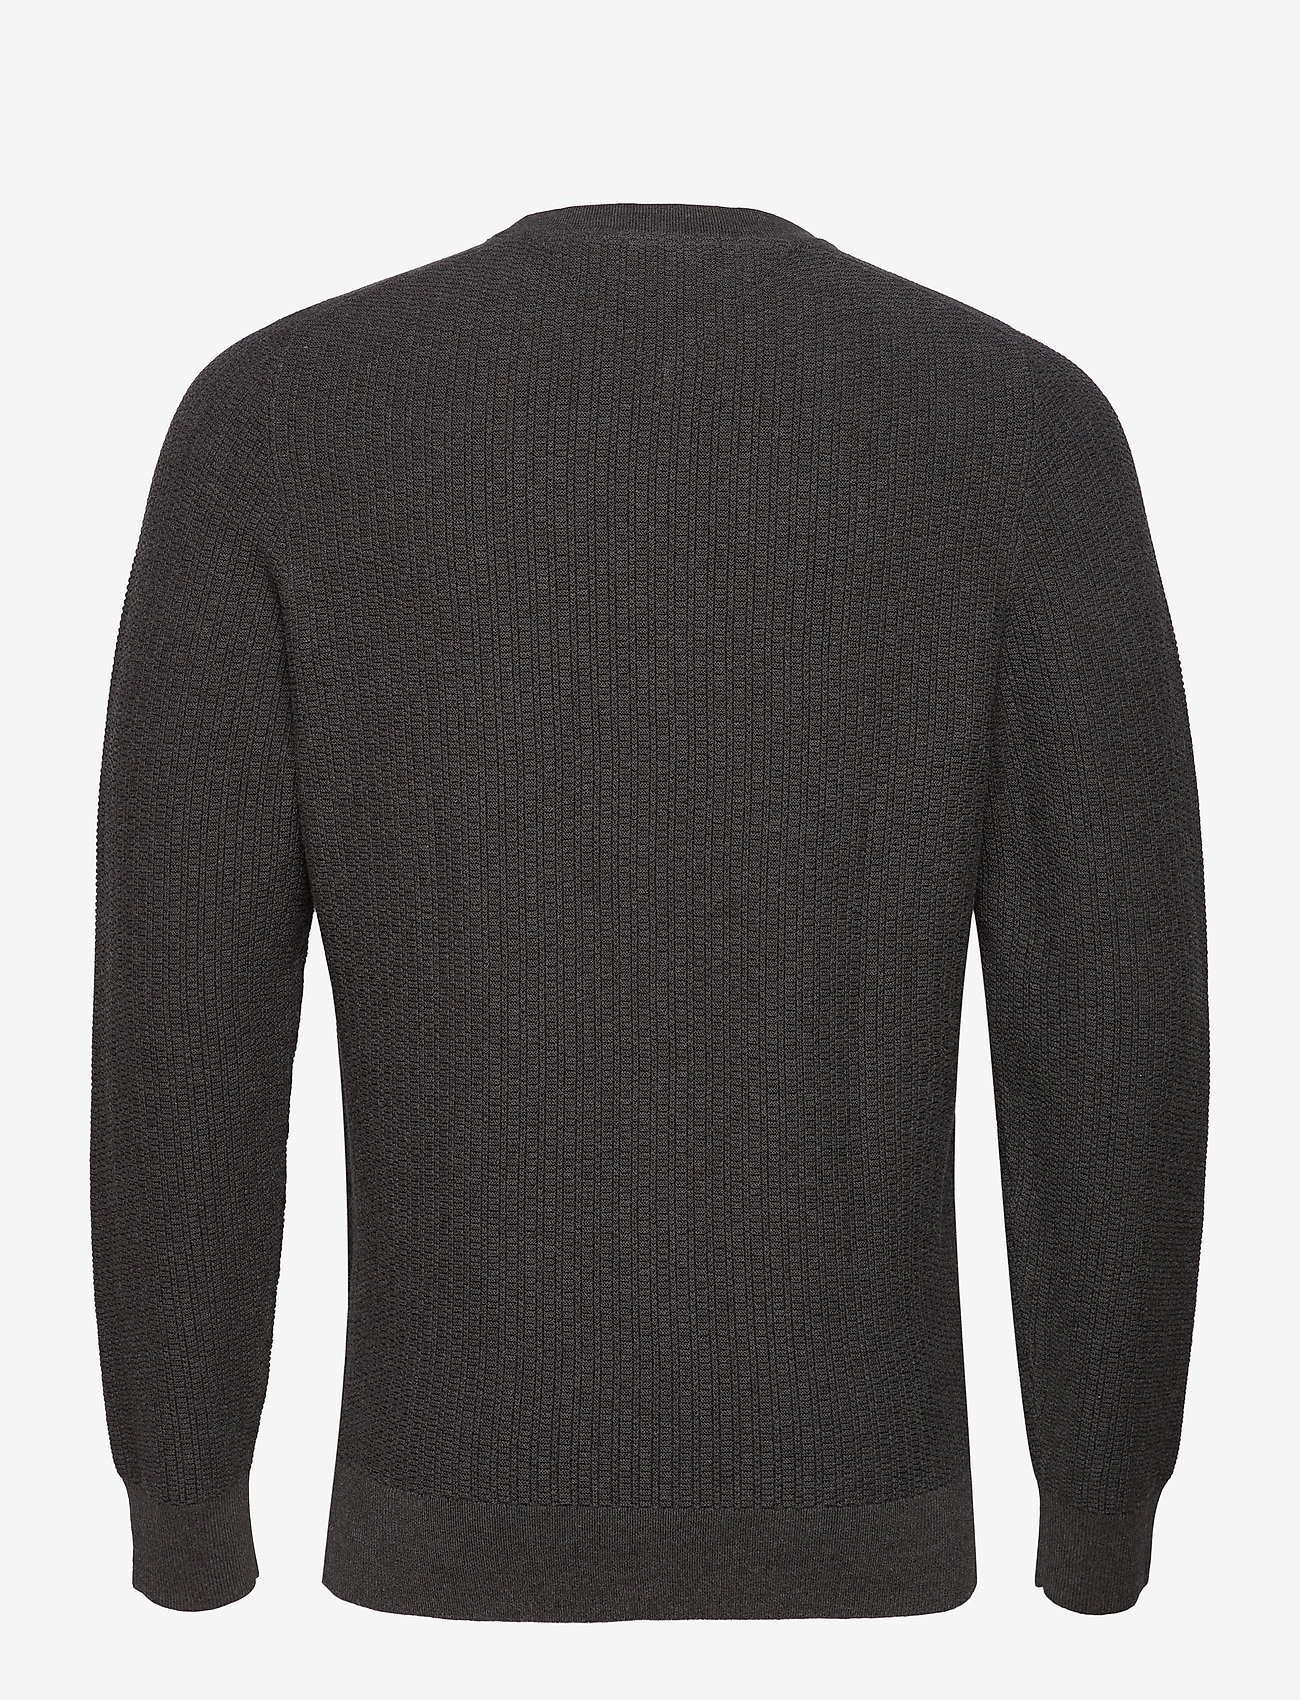 Tommy Hilfiger - BOLD TEXTURED COTTON SWEATER - basic strik - charcoal heather - 1